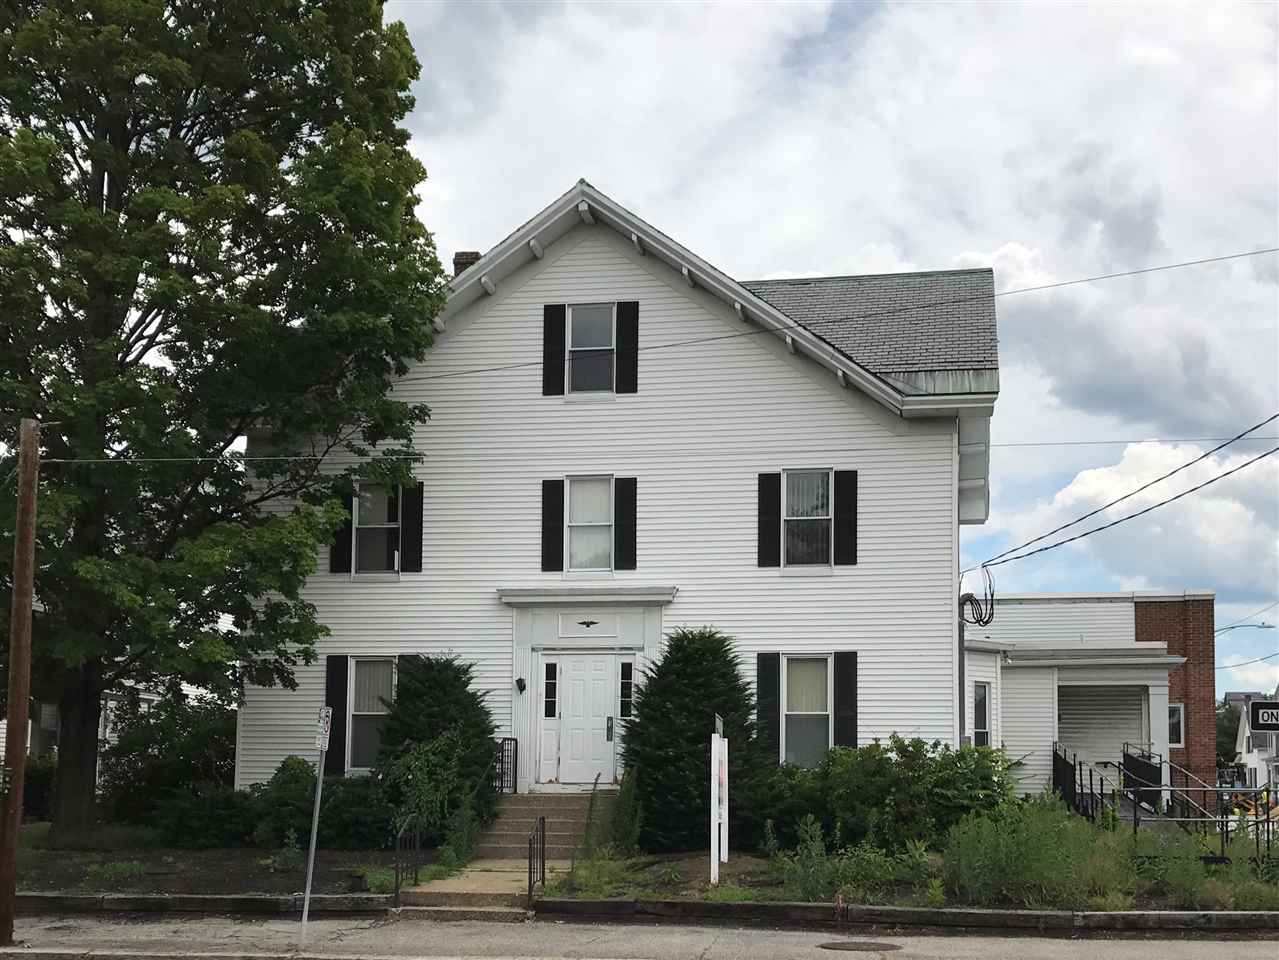 298 Hanover Street, Manchester, NH 03103